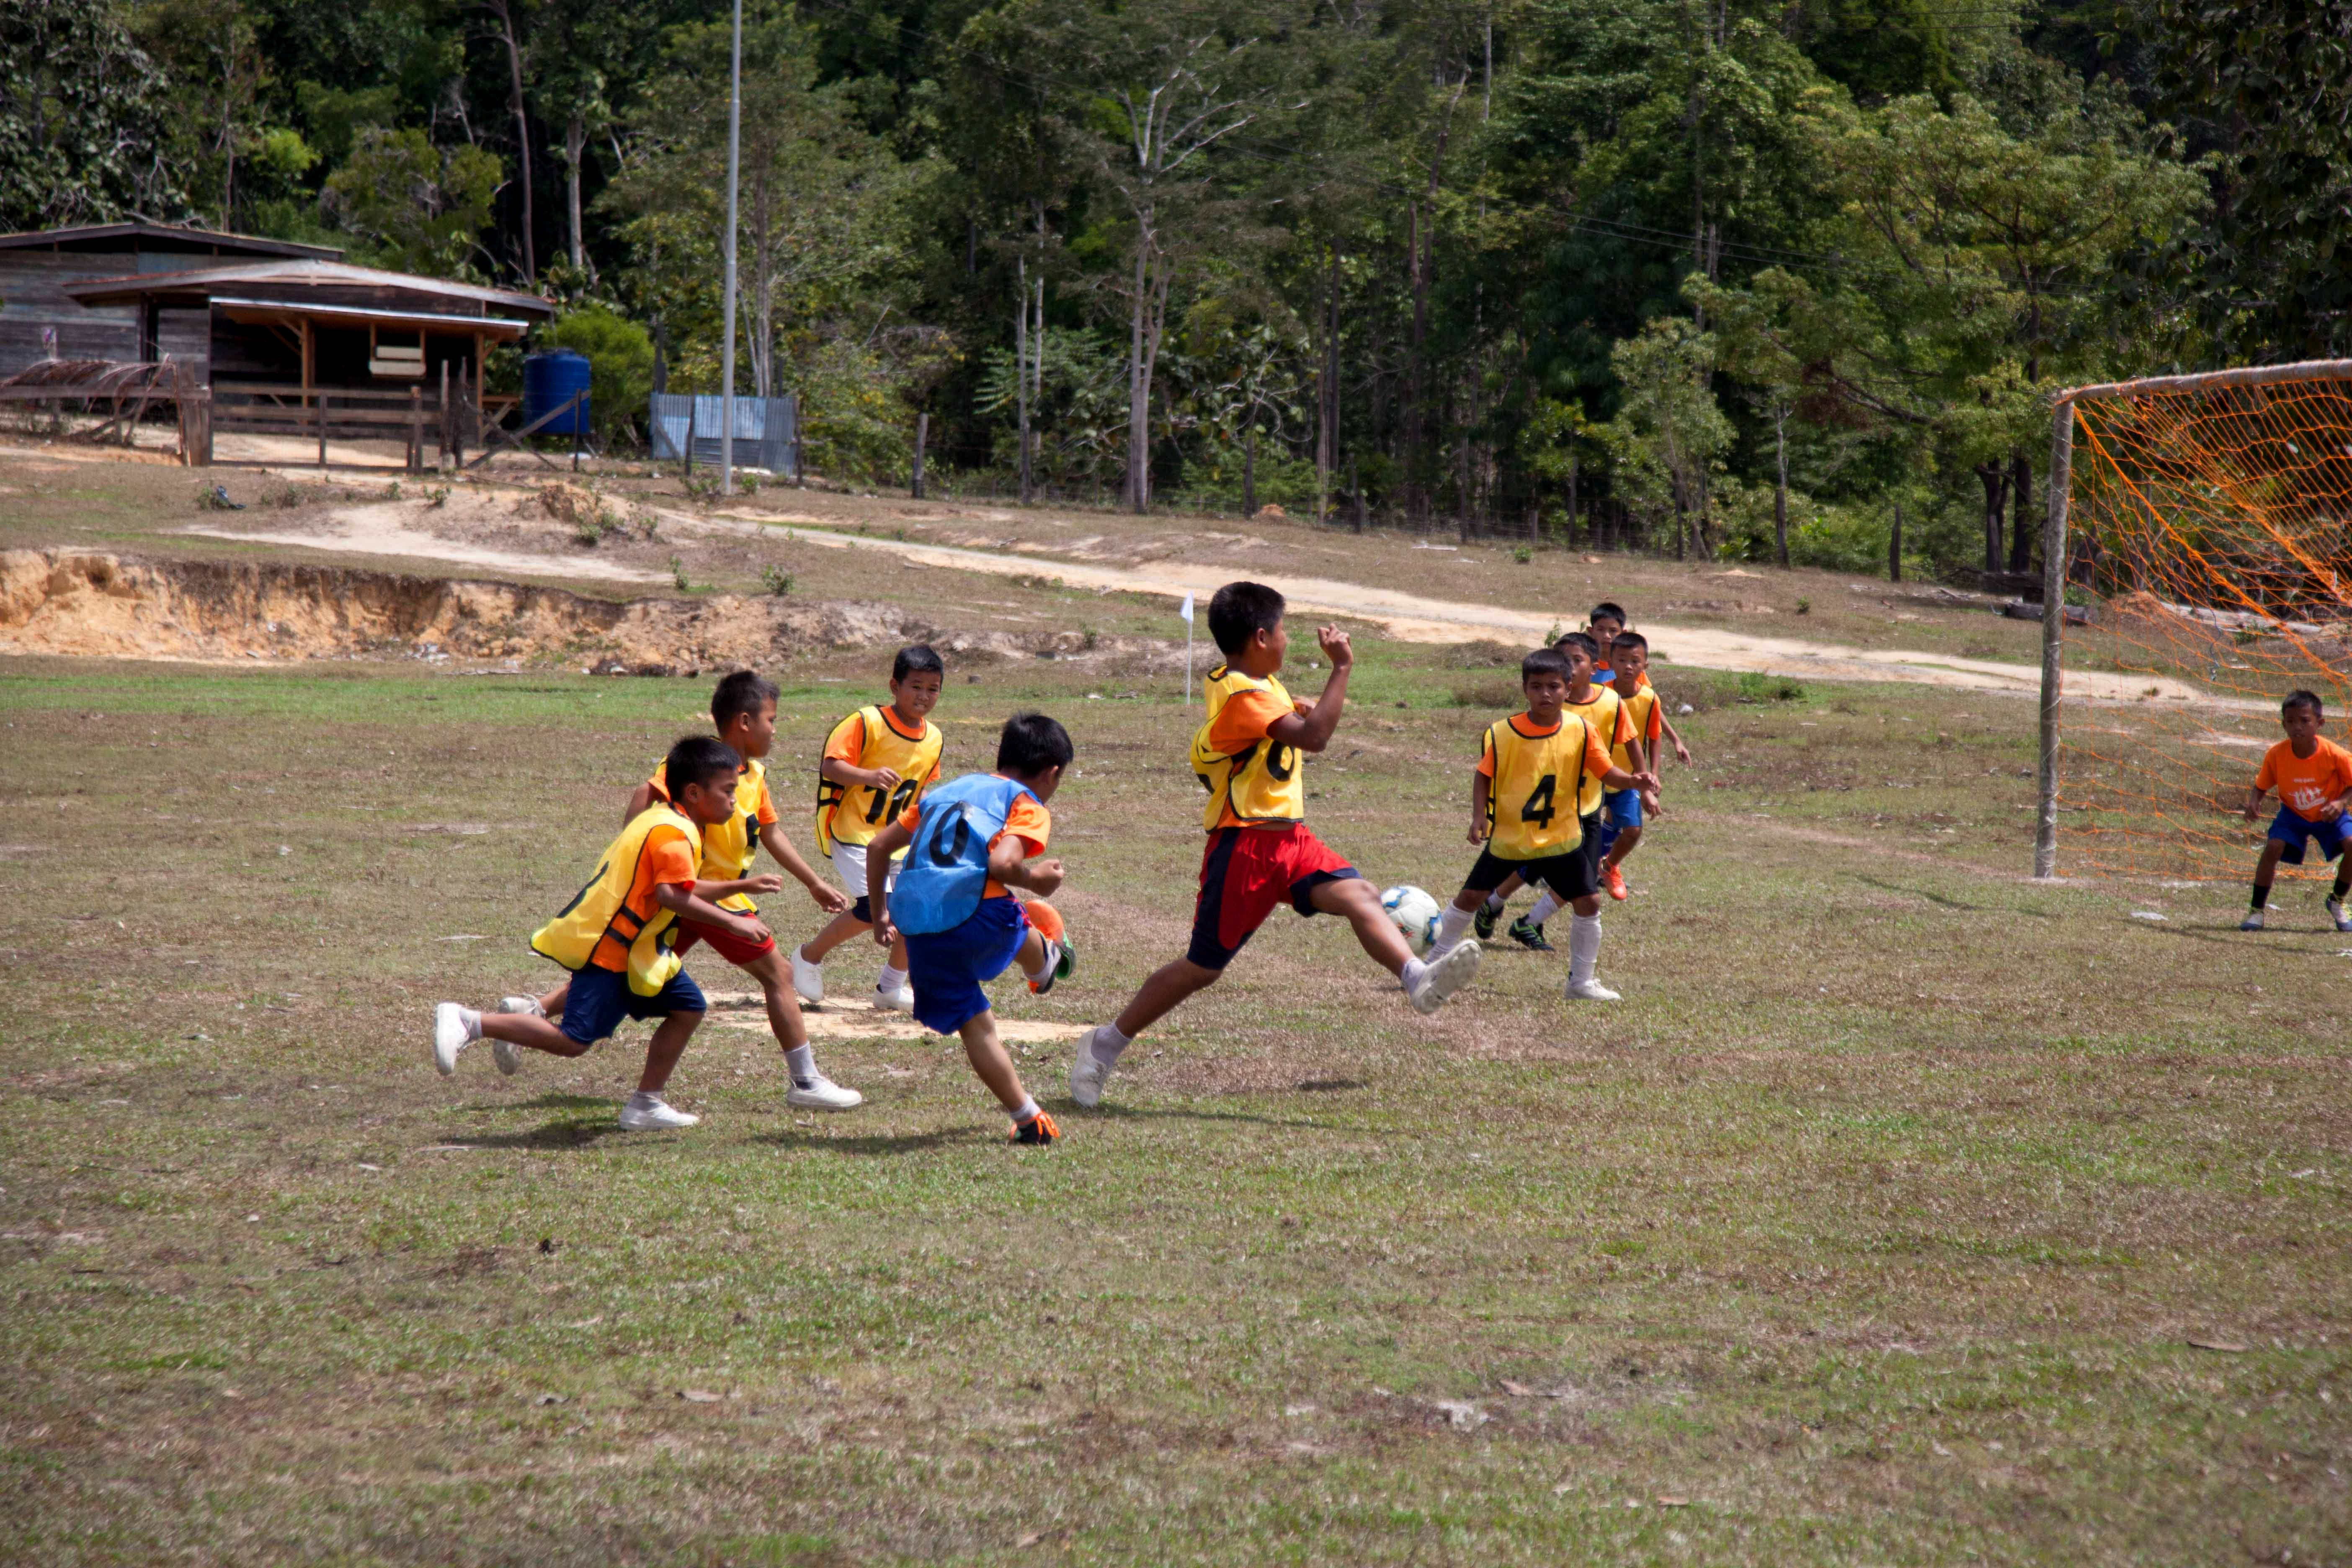 The U-12 Football League was full of thrills and spills. 12岁以下儿童足球比赛洋溢着汗水、热情与欢笑。